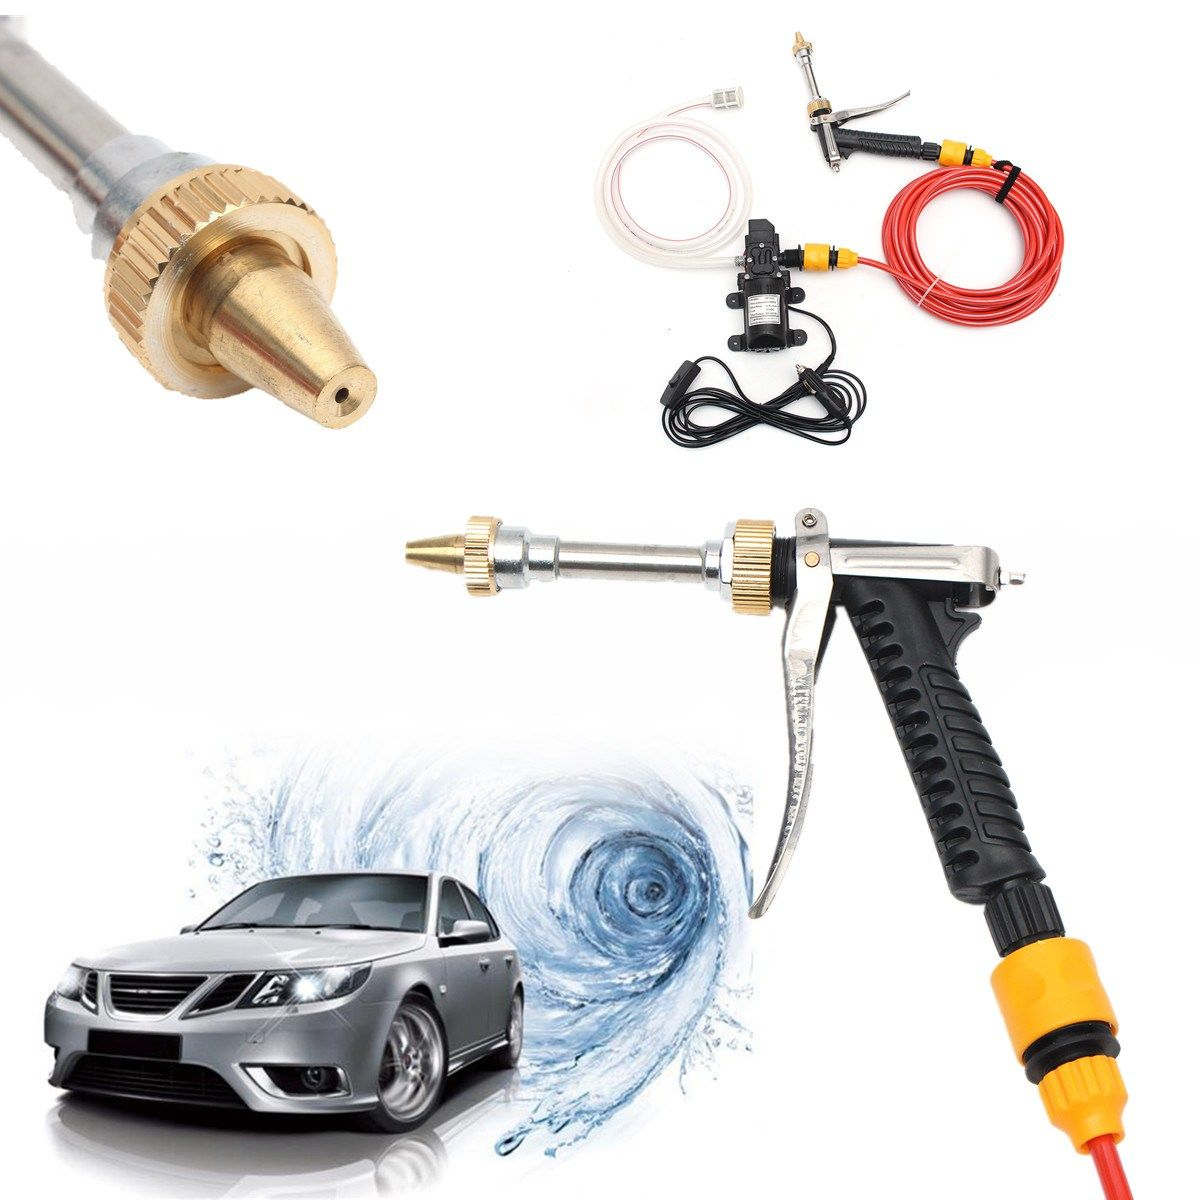 12v 60w High Pressure Washer Spray Tool Electric Car Water Cleaner Wash Pump Kit Pressure Washer Clean Water High Pressure